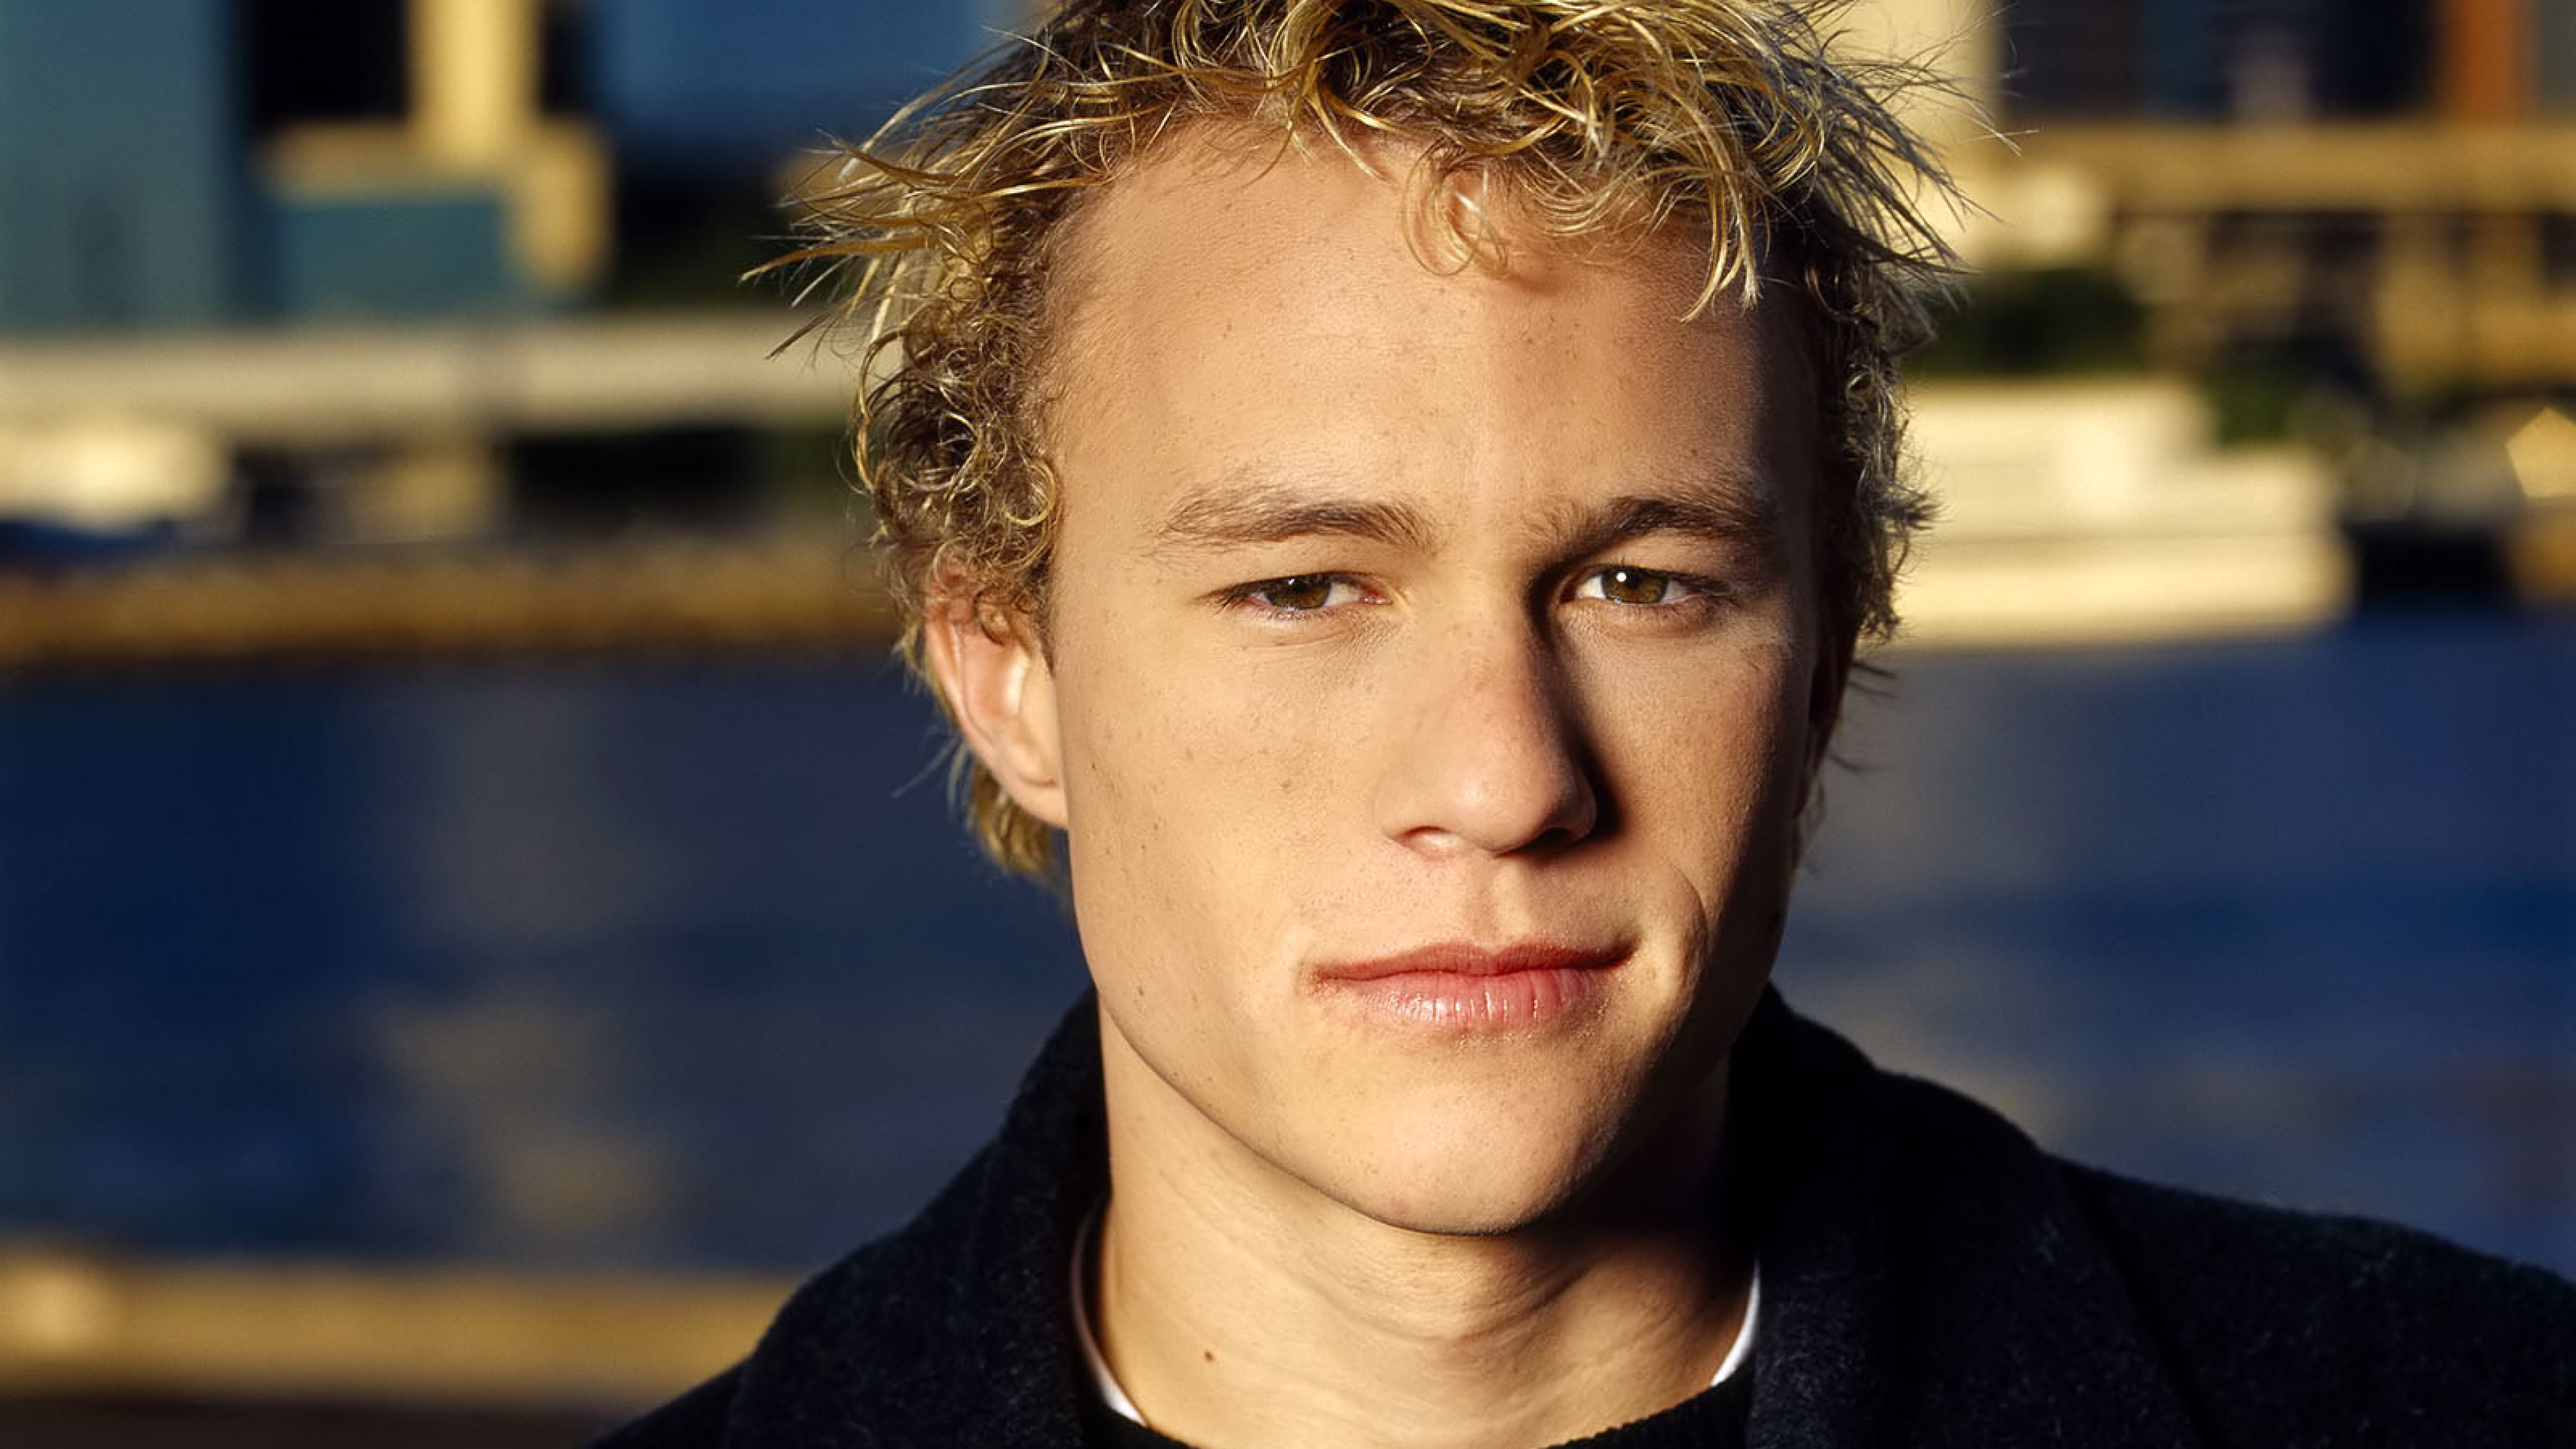 10x10 Heath Ledger New Hair Cut Images 10K Wallpaper, HD